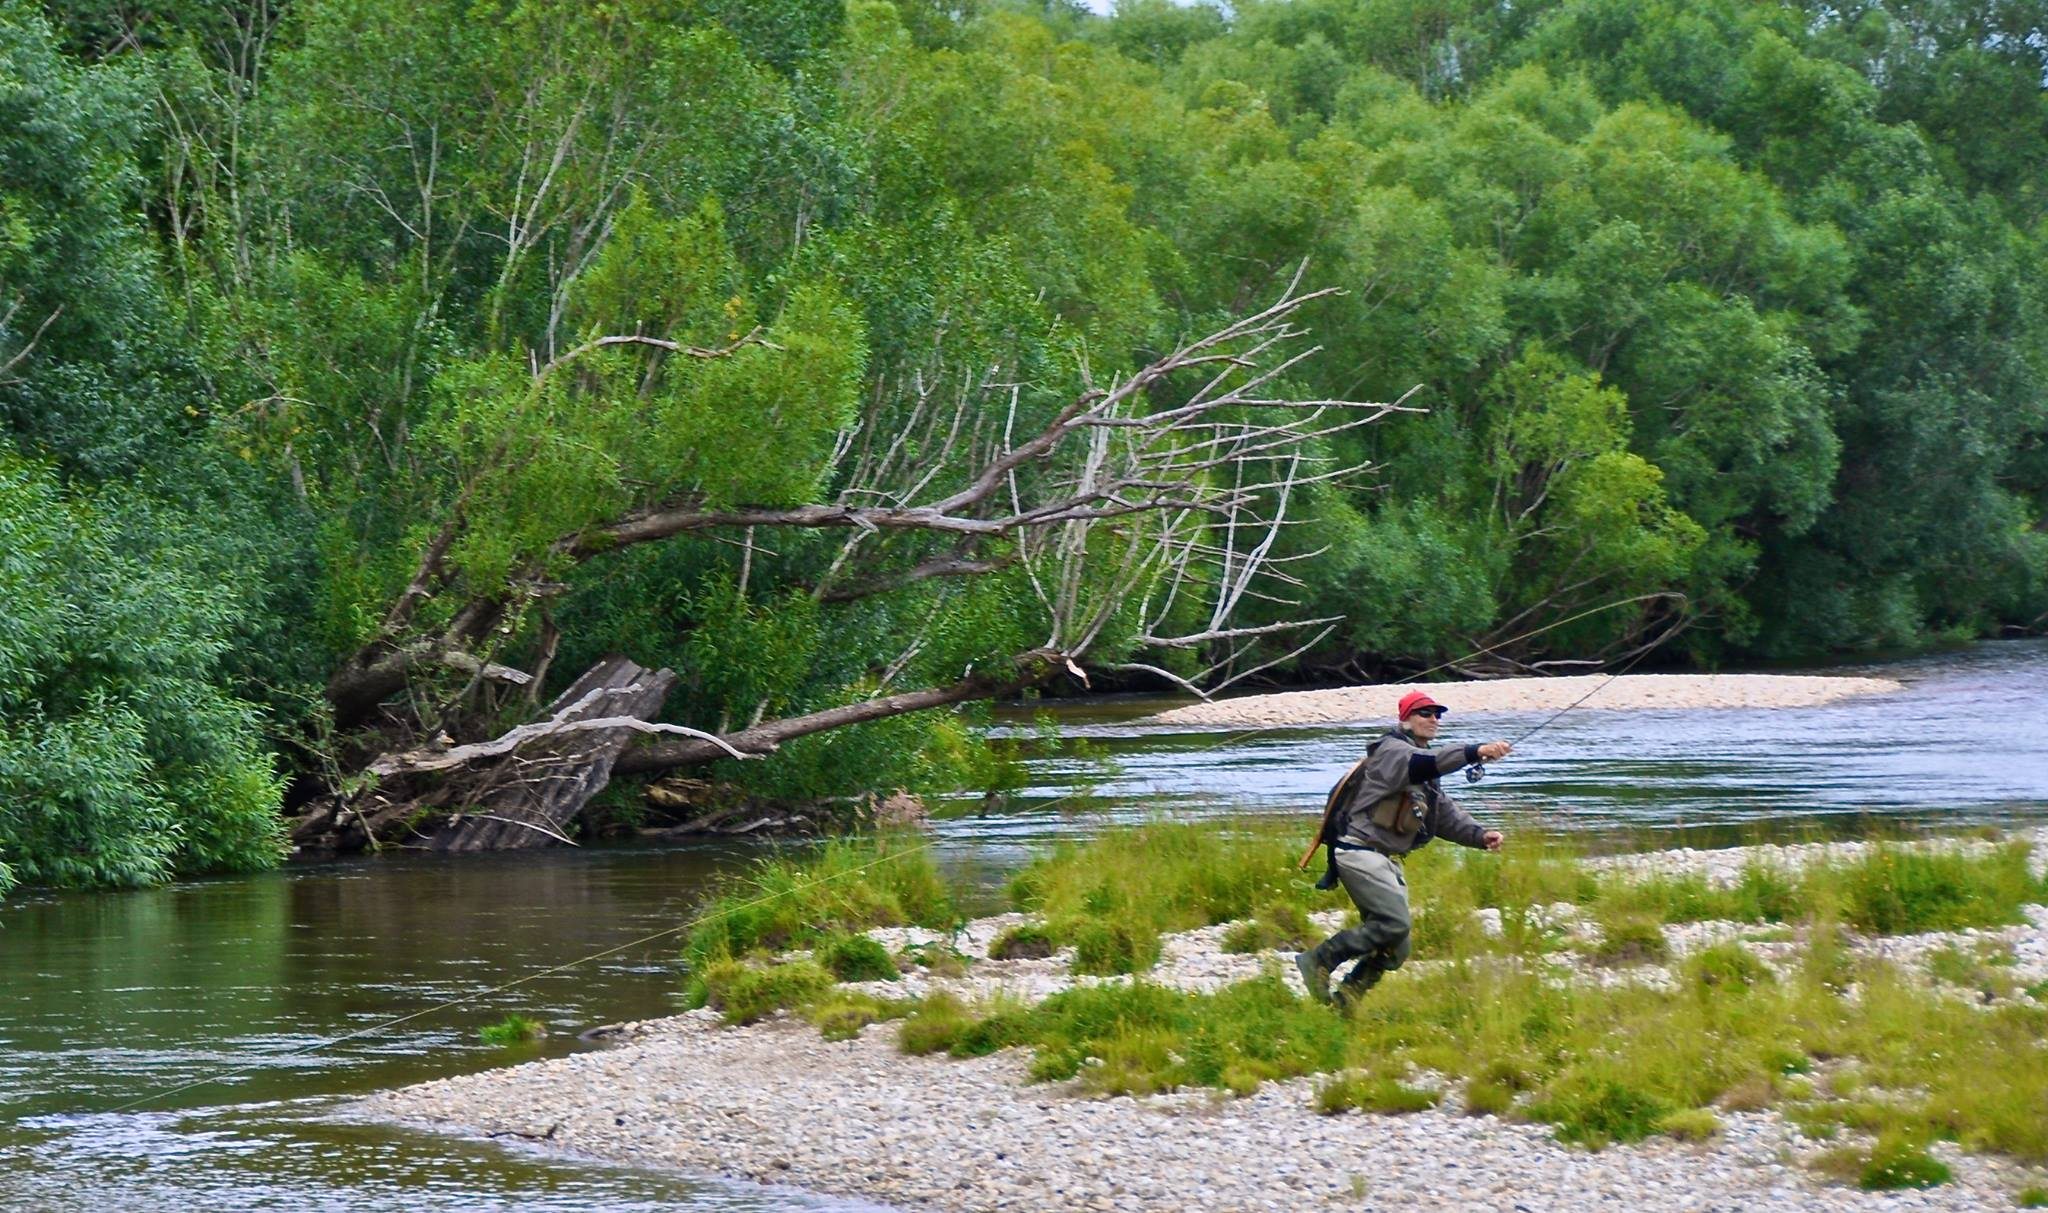 Guided fly fishing for new zealand trout with nzpfga guide for Fly fishing new zealand